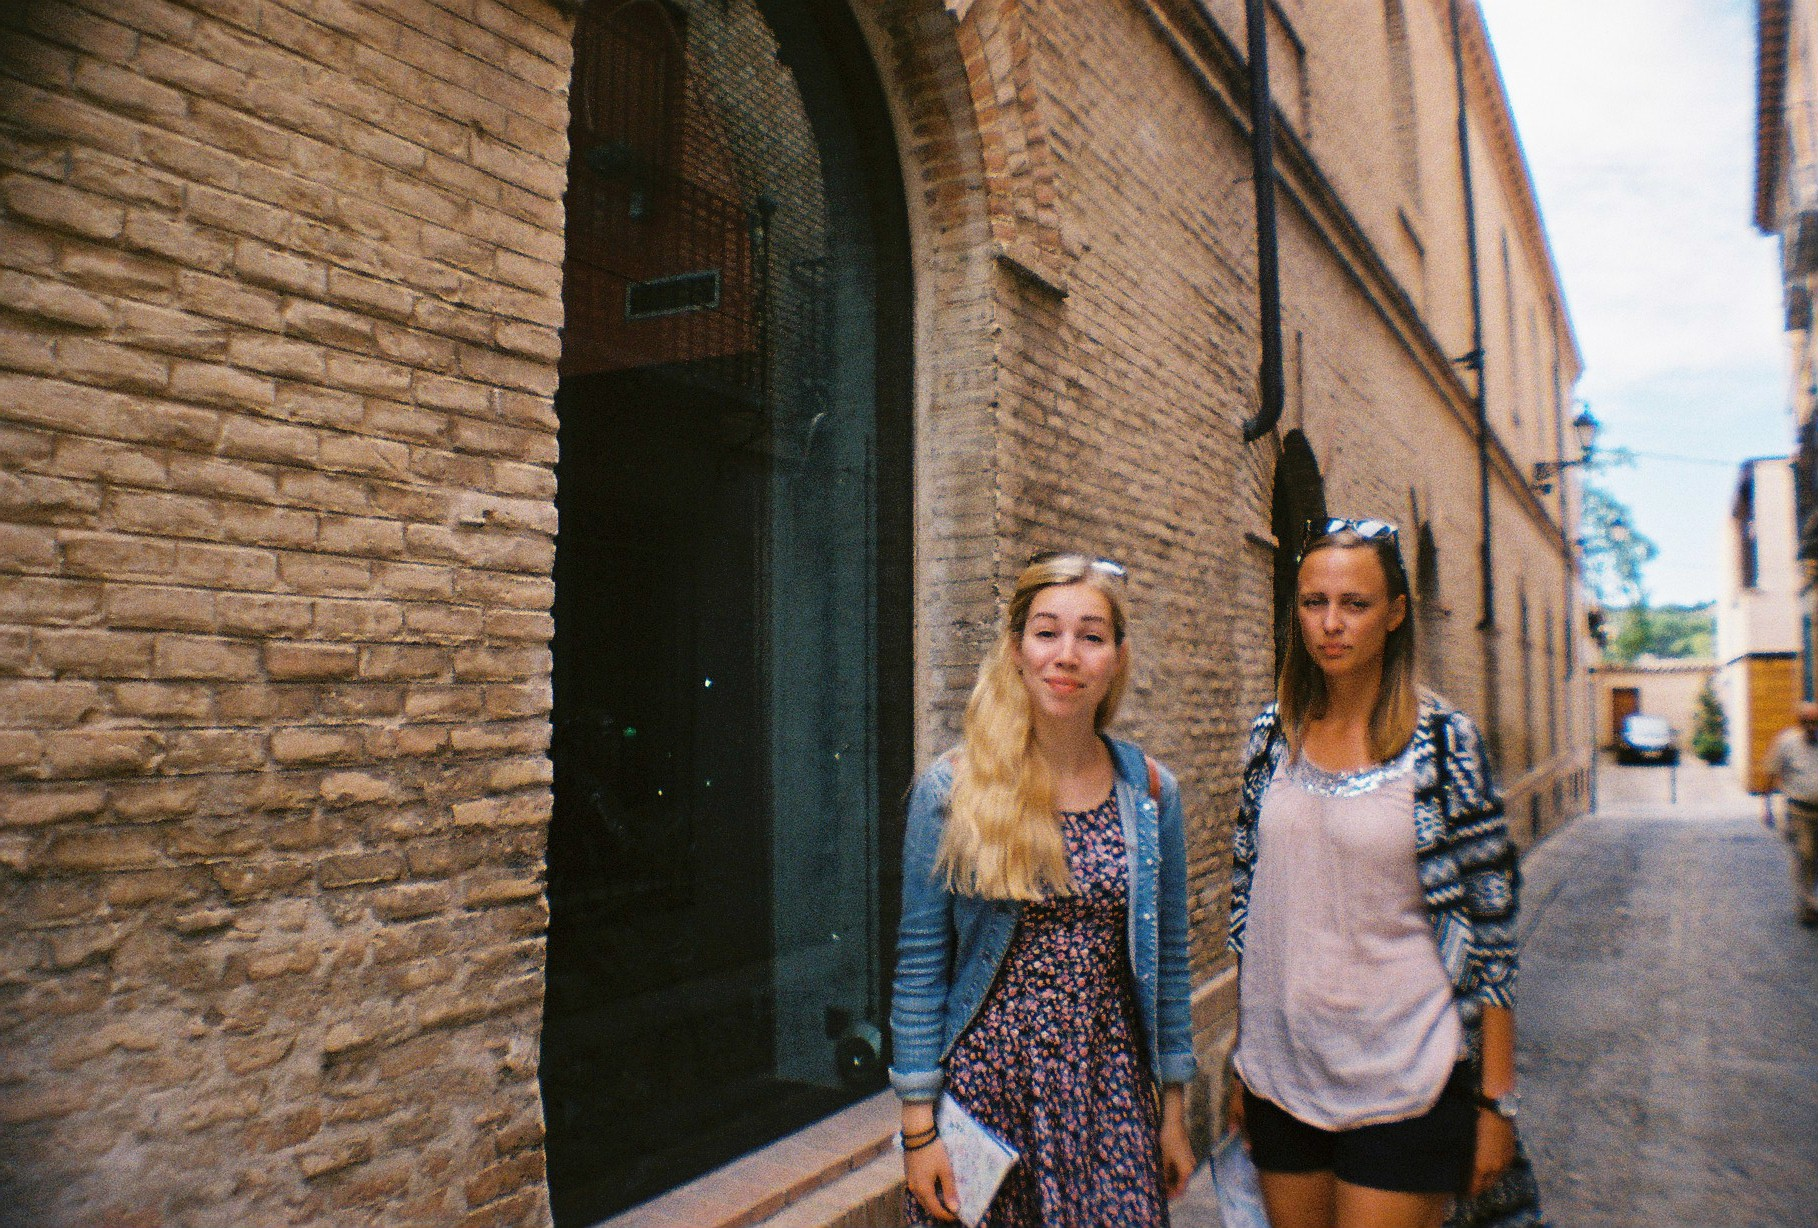 Girls standing in narrow cobblestone street